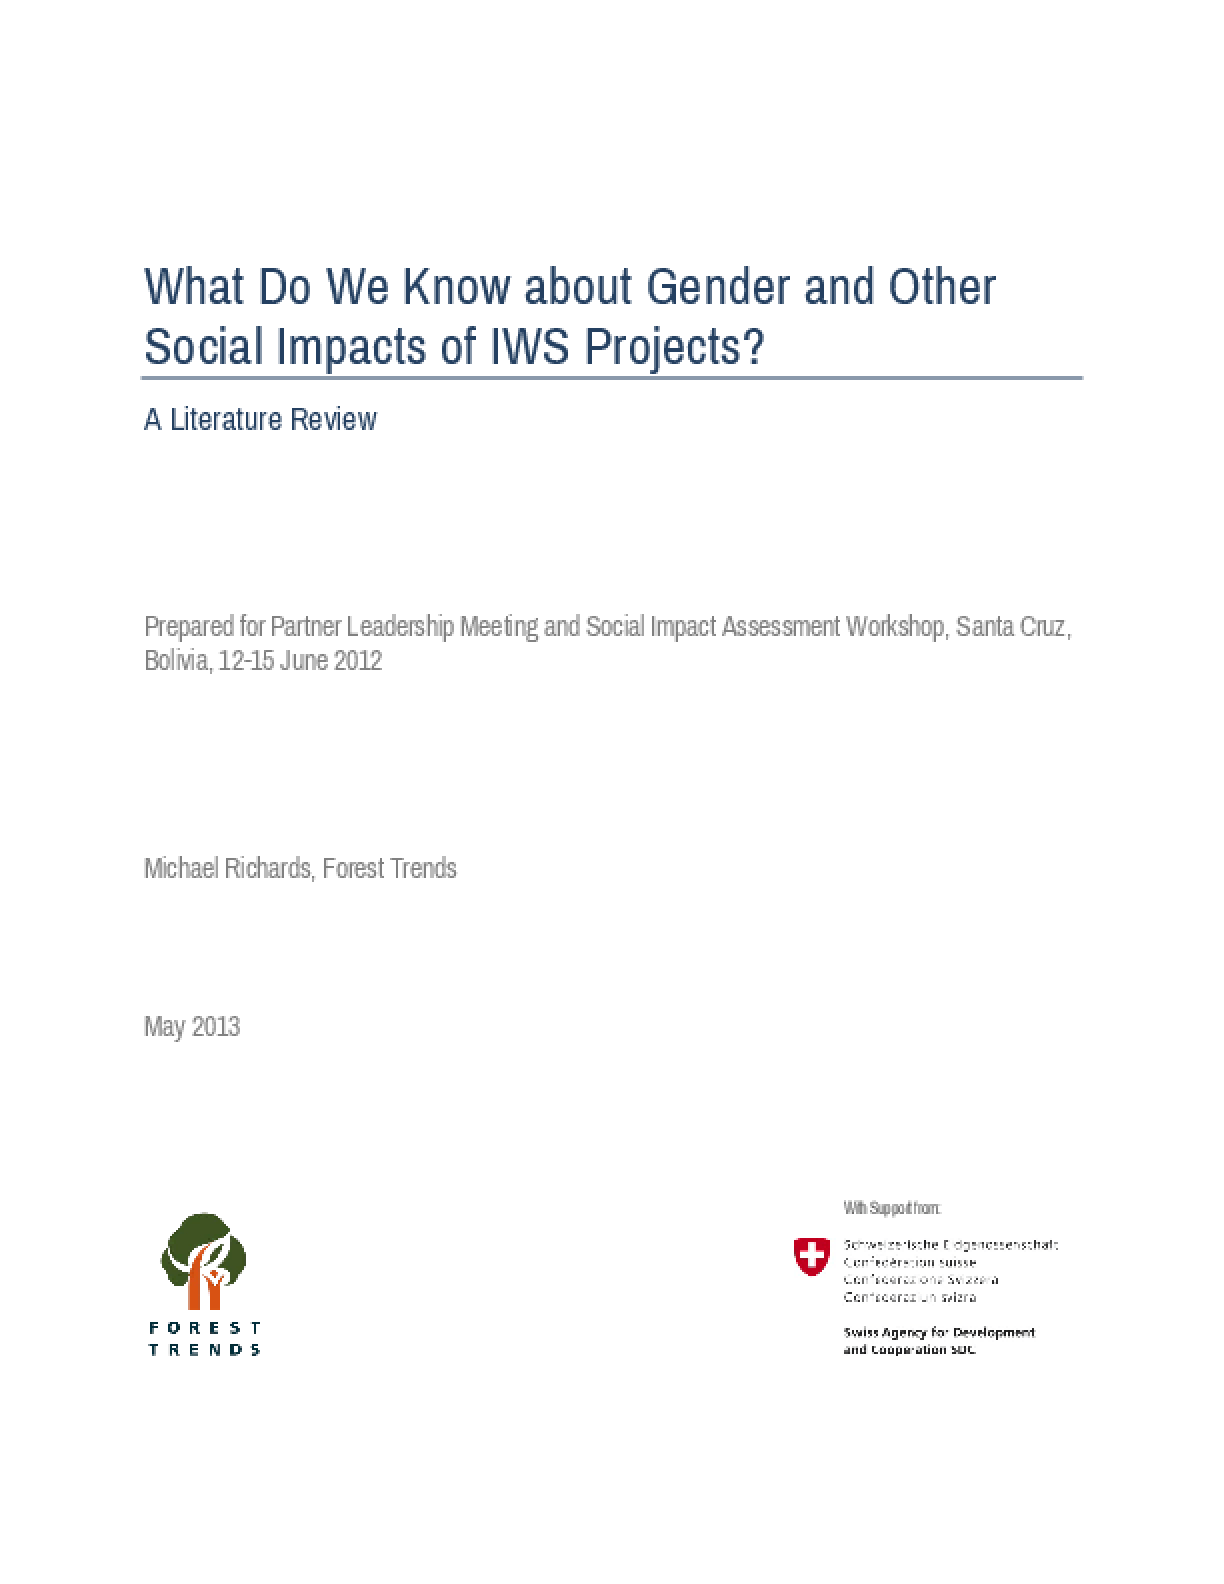 What Do We Know about Gender and Other Social Impacts of IWS Projects?: A Literature Review